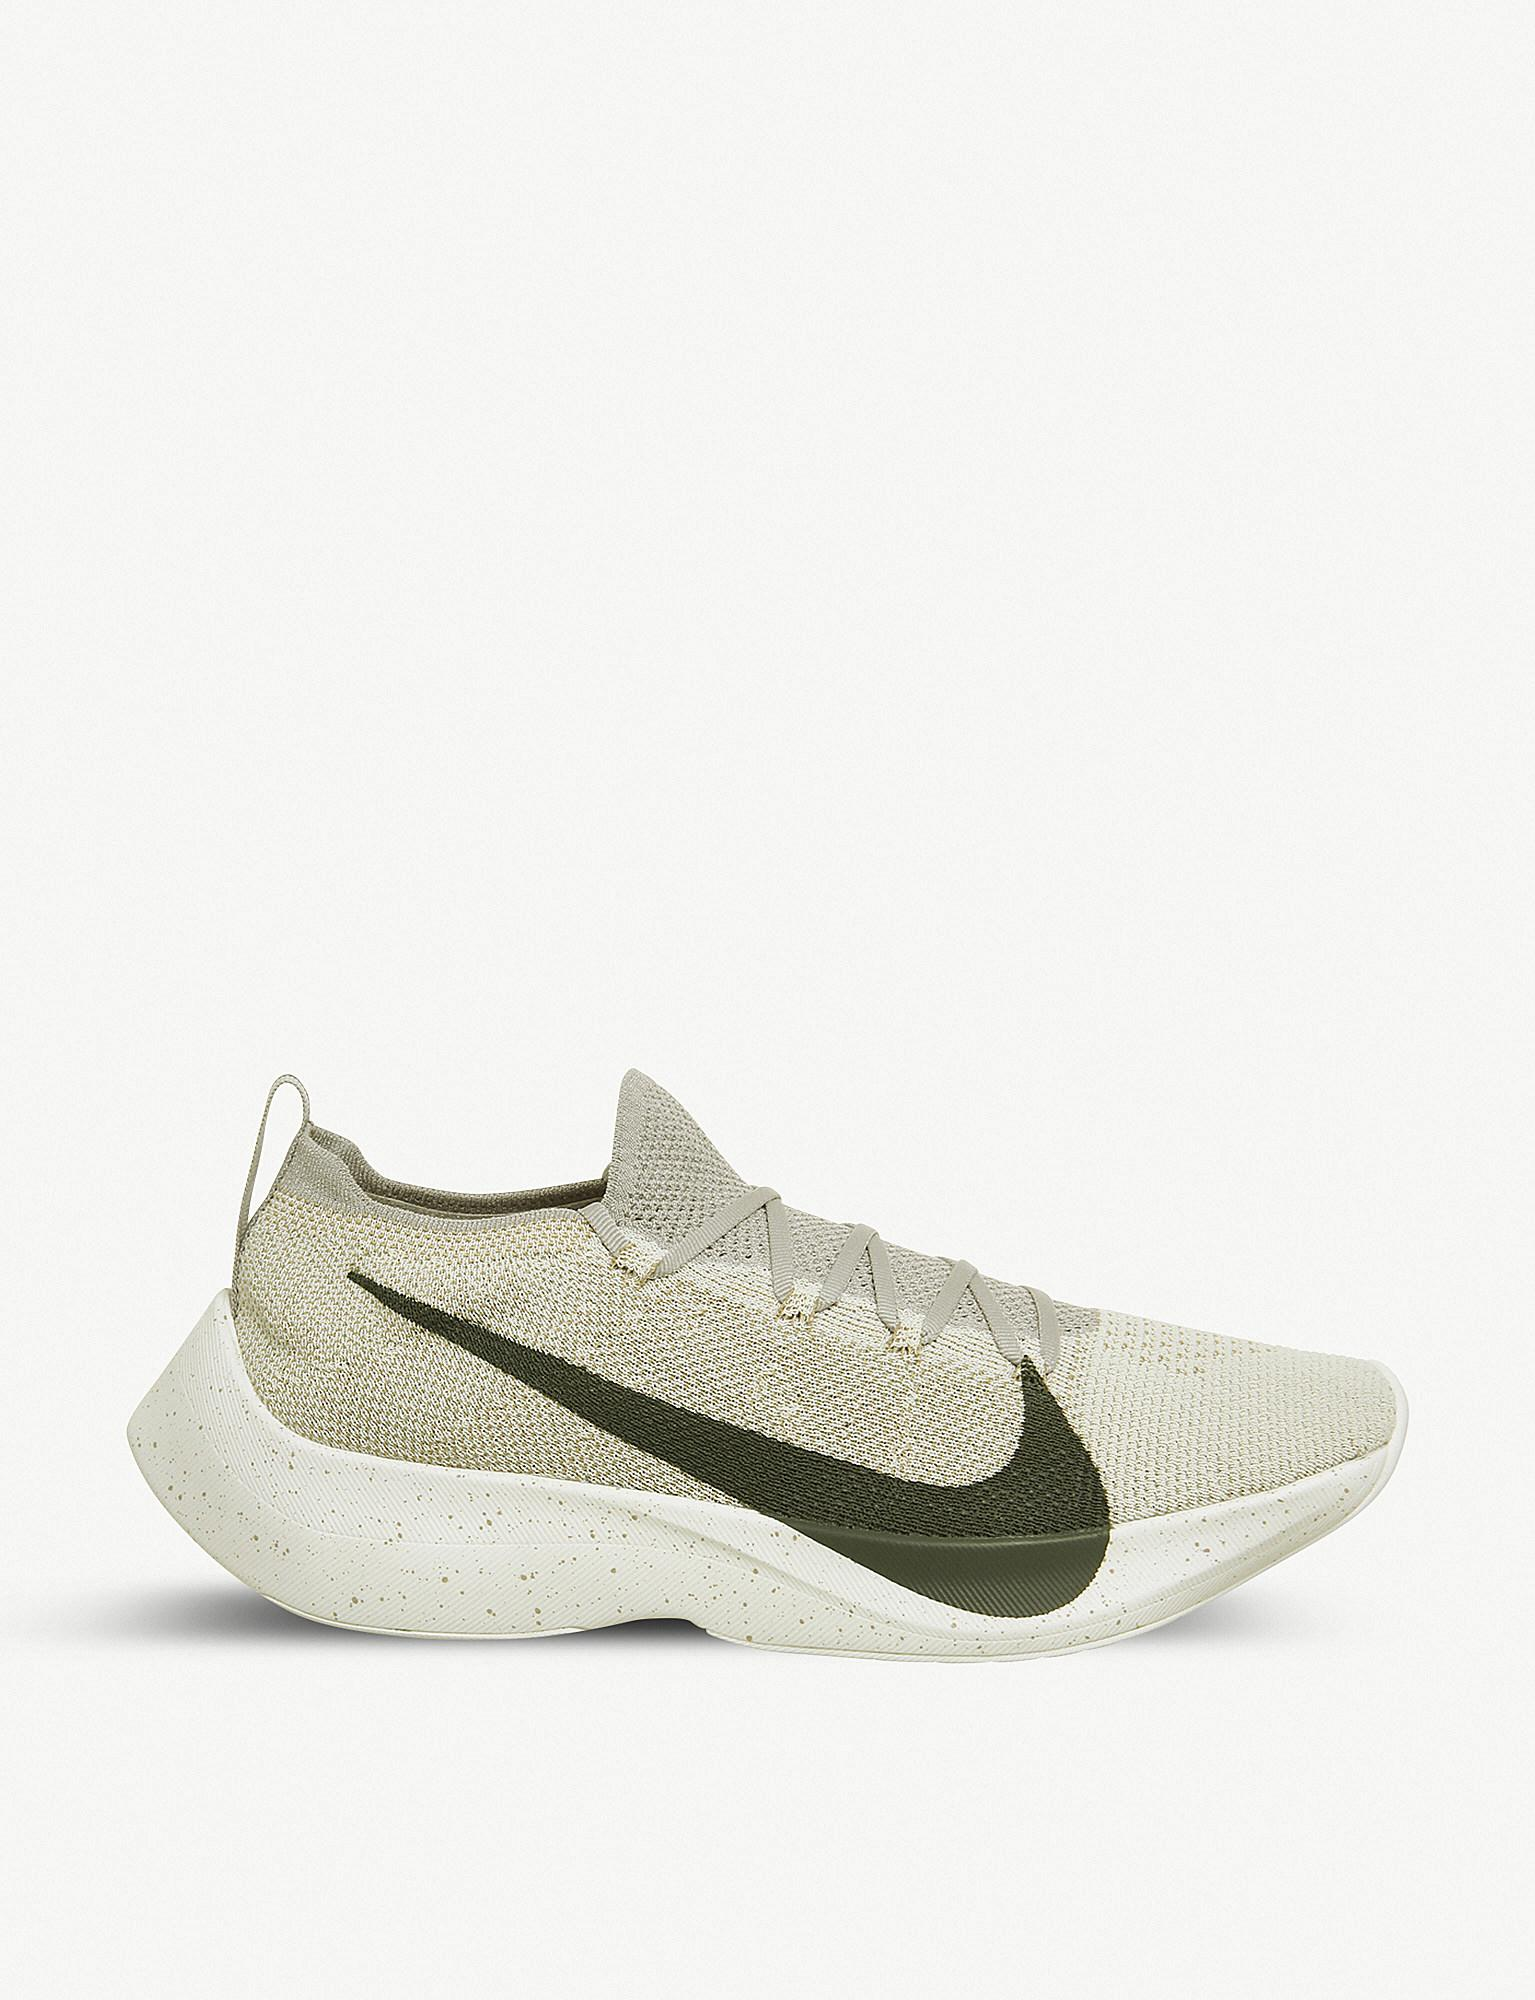 910afc8ac0a60 Lyst - Nike React Vapor Street Flyknit Trainers for Men